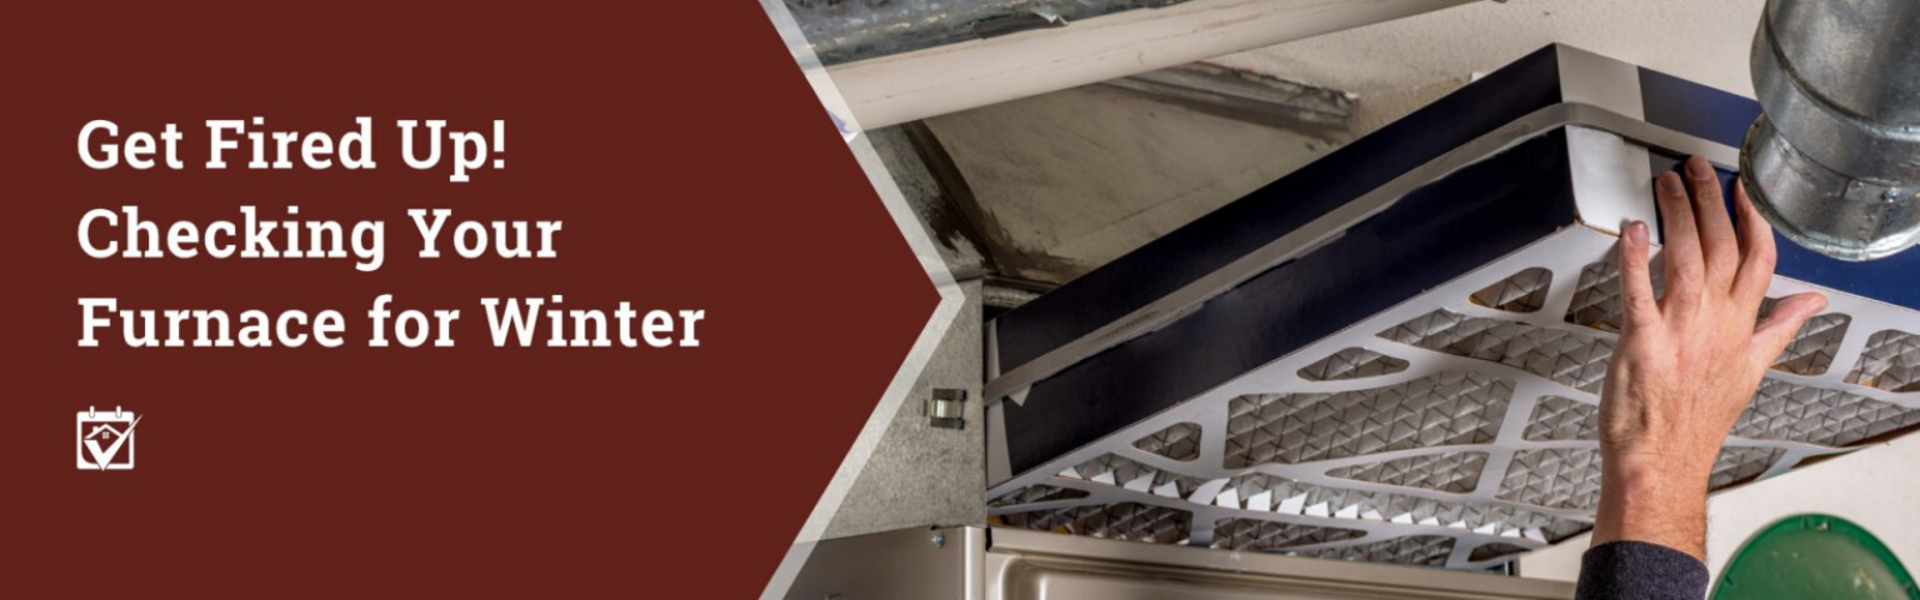 Get Fired Up! Checking Your Furnace for Winter